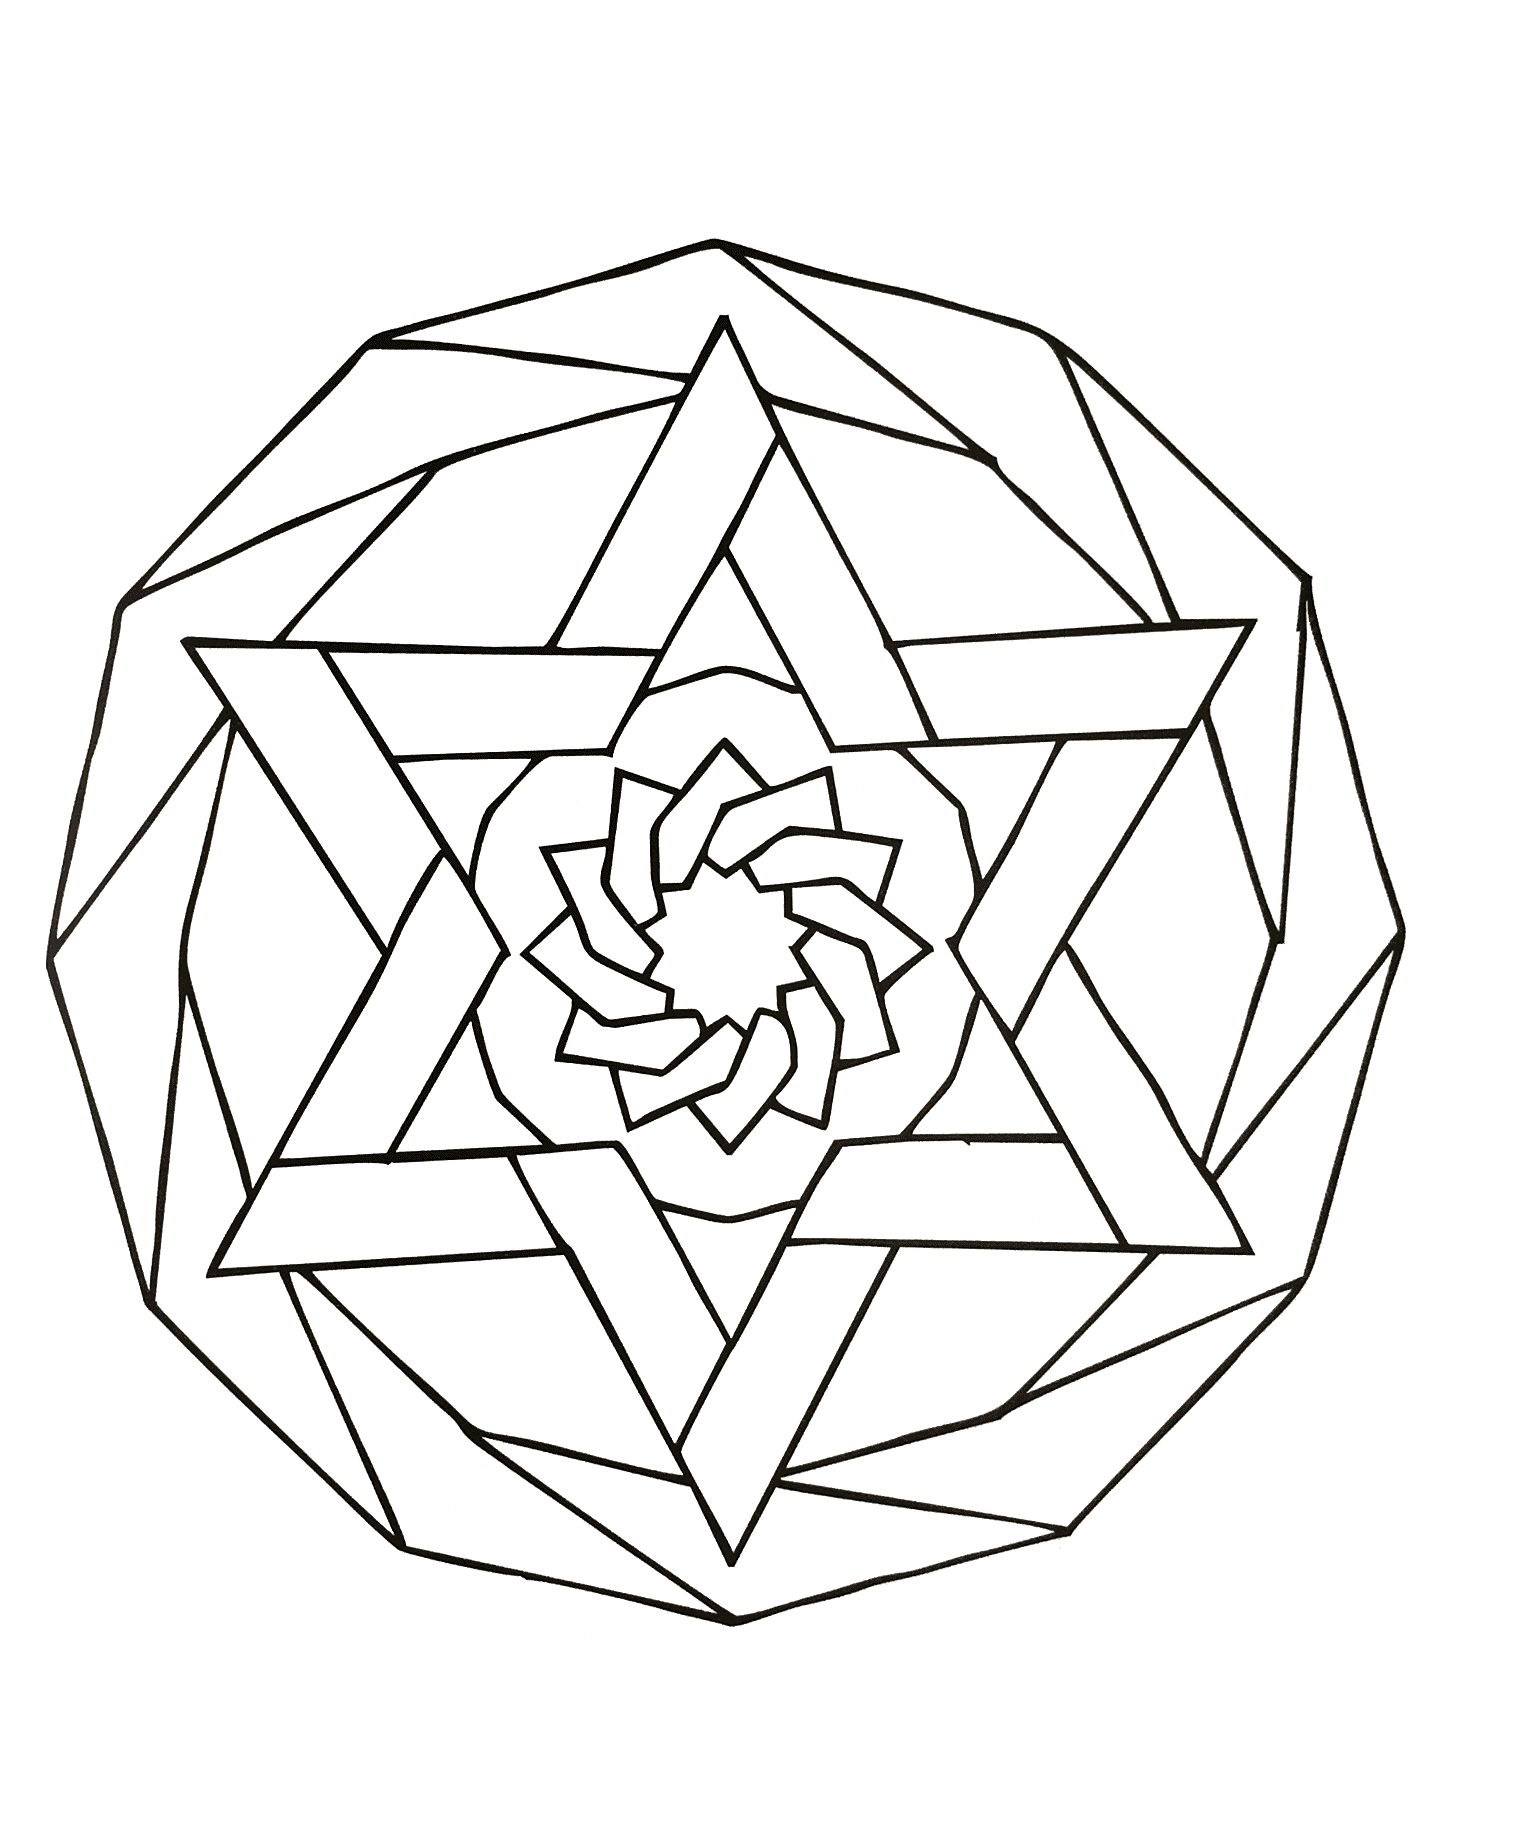 simple mandala 88 mandalas coloring pages for kids to print color. Black Bedroom Furniture Sets. Home Design Ideas